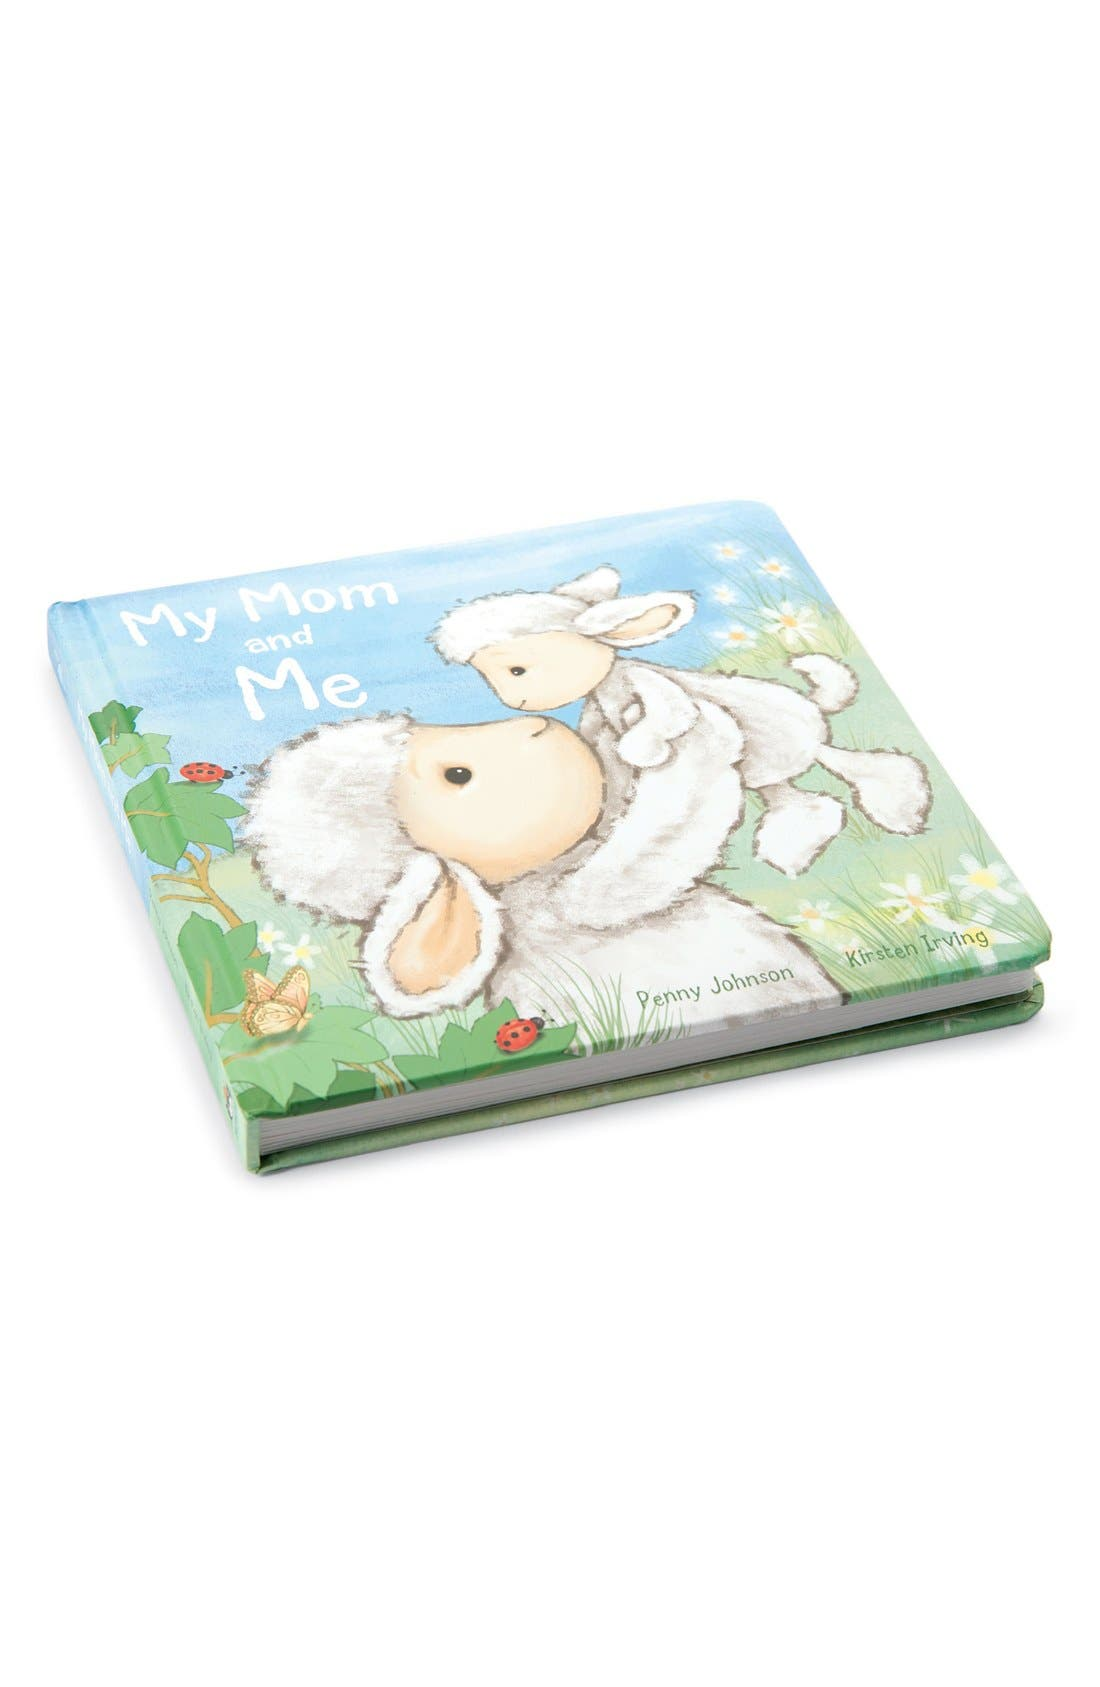 Main Image - 'My Mom and Me' Book